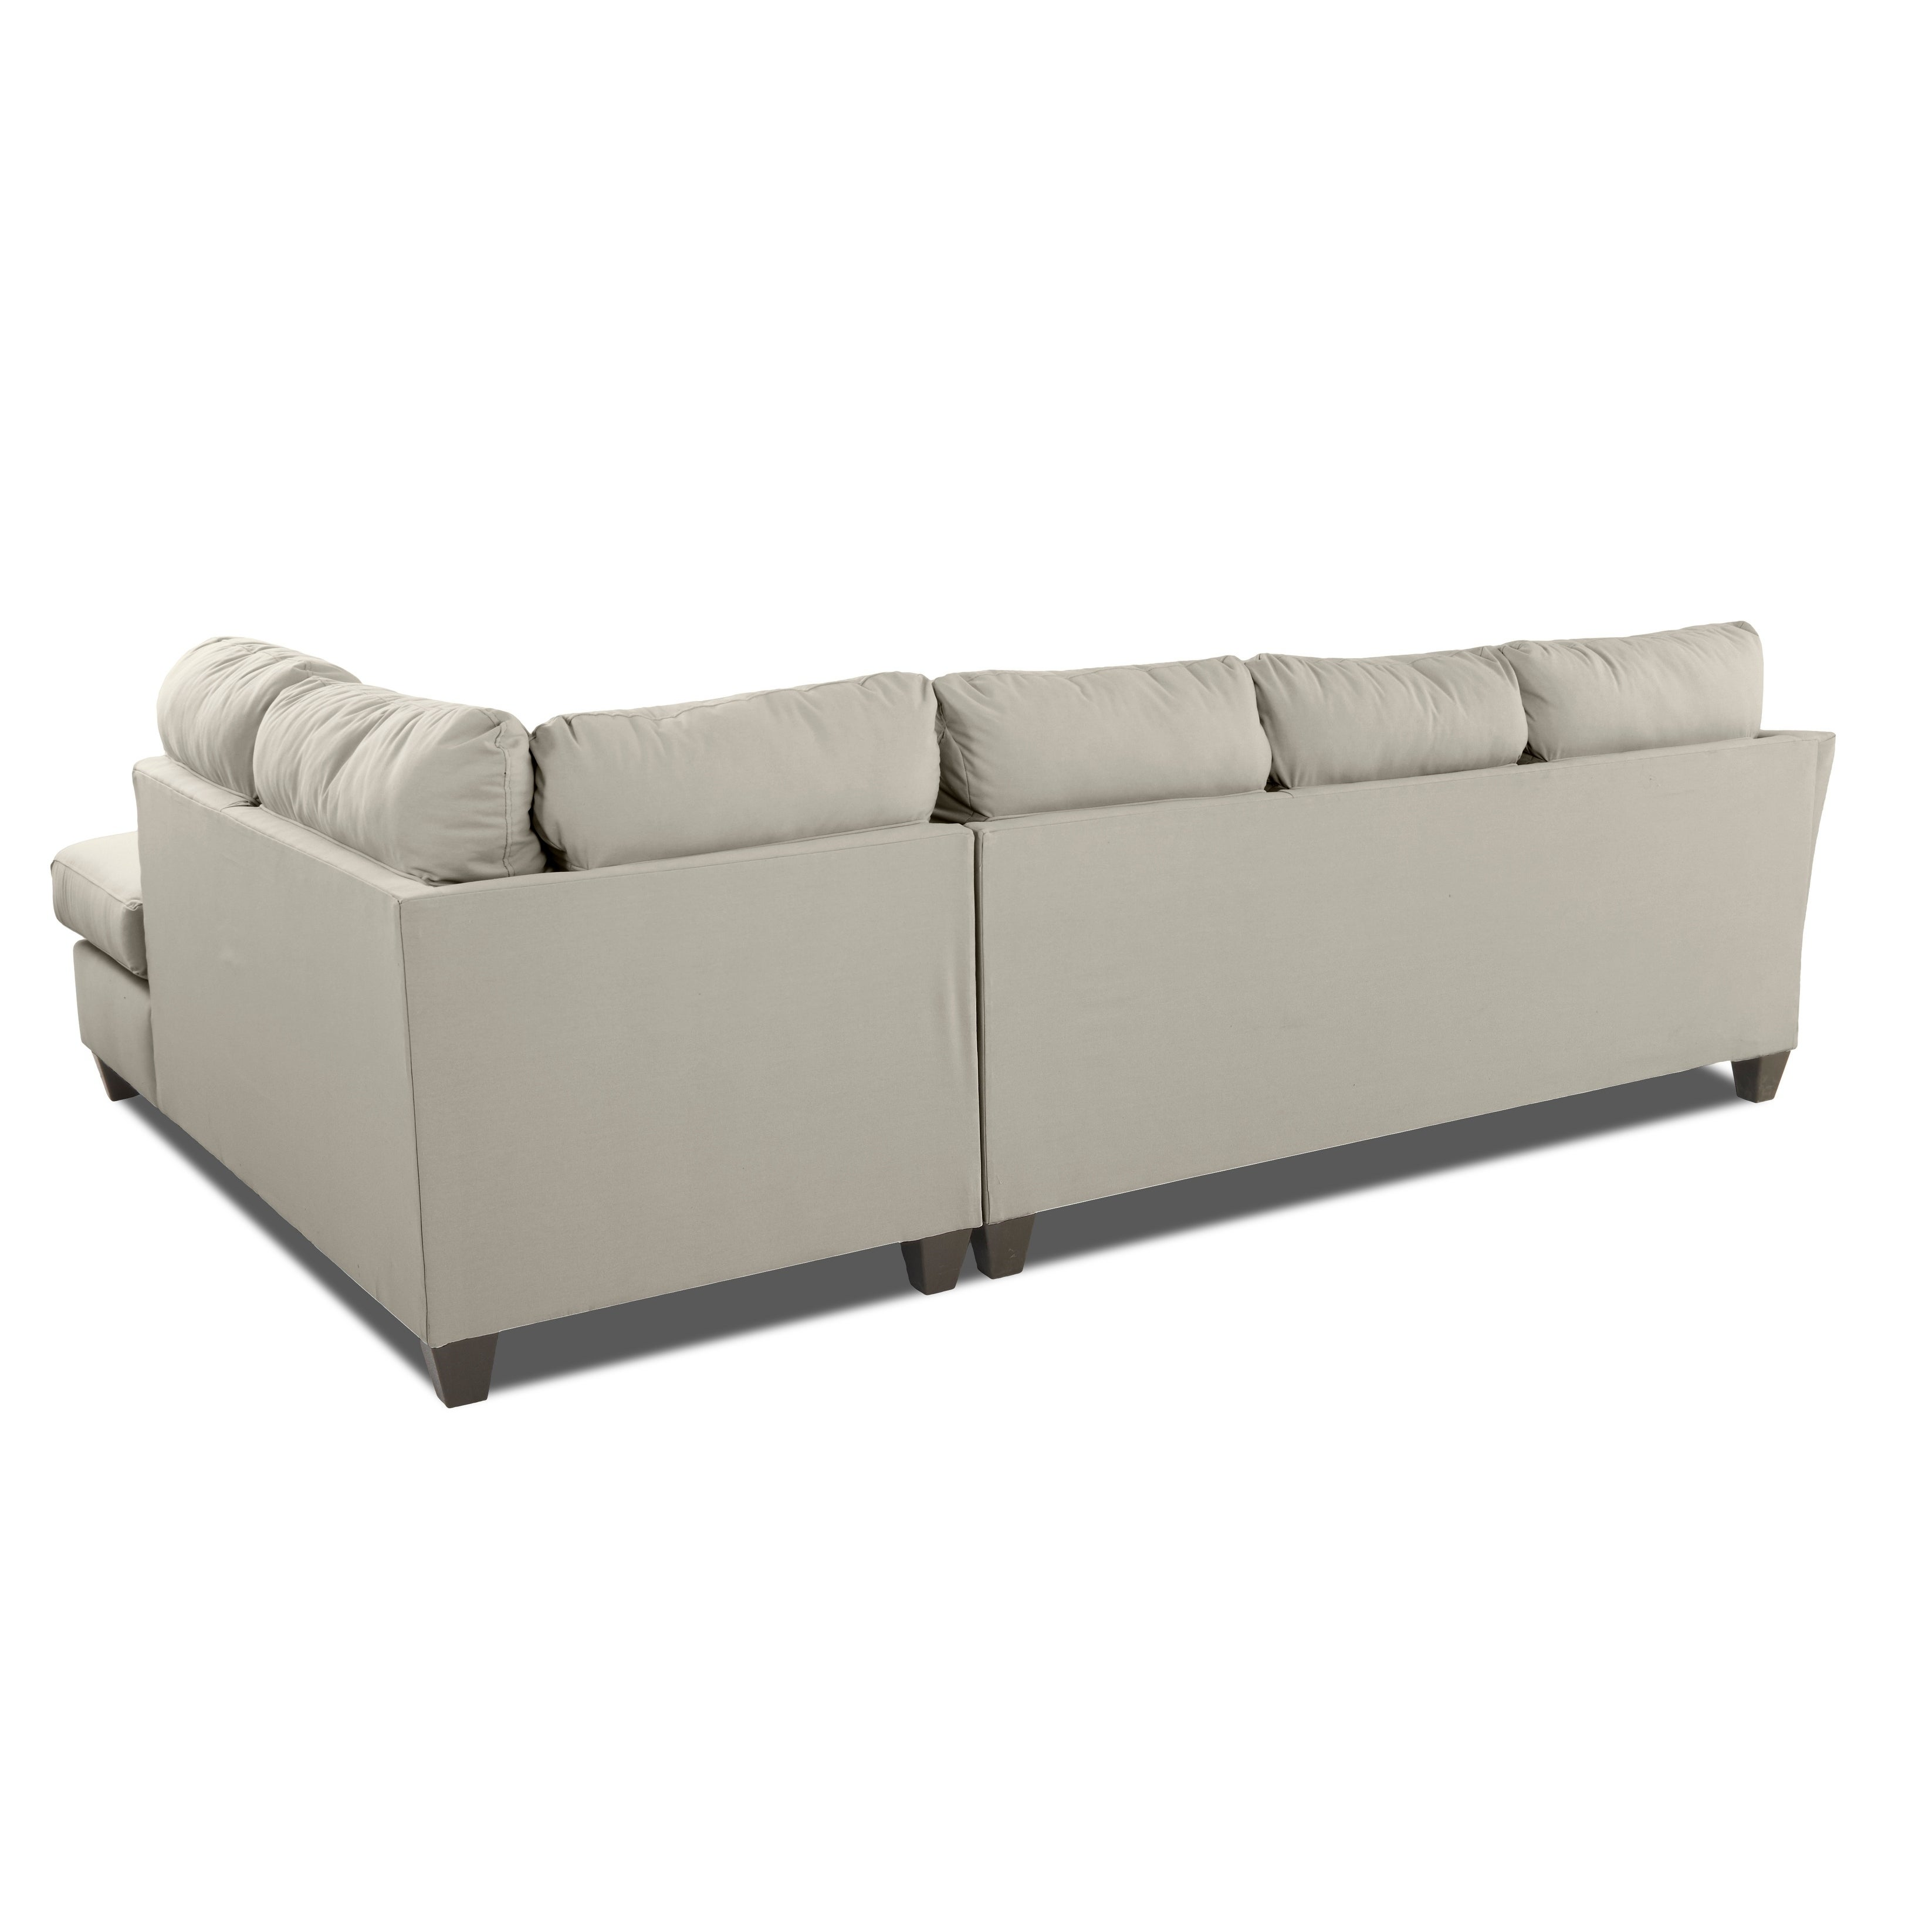 Shop Klaussner Furniture Made To Order Dallas Sofa Chaise Sectional   On  Sale   Free Shipping Today   Overstock.com   22973935